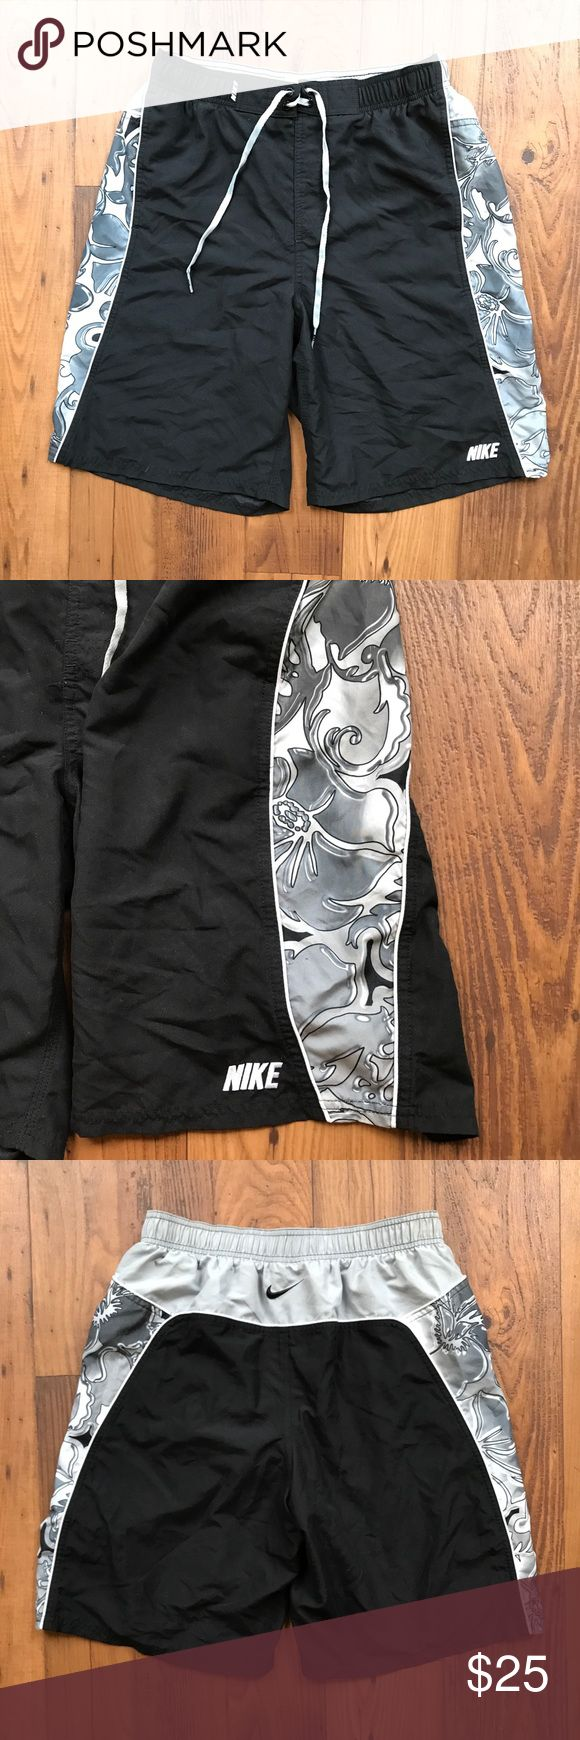 """Nike Black Swimming Trunks Hawaiian Floral Sides Men's Nike swimming trunks. They are black with gray side panels that have Hawaiian flowers. Tie around the waist. Pockets. Lined. Size medium. From top to bottom the trunks are about 20.5"""". Nike Swim Swim Trunks"""